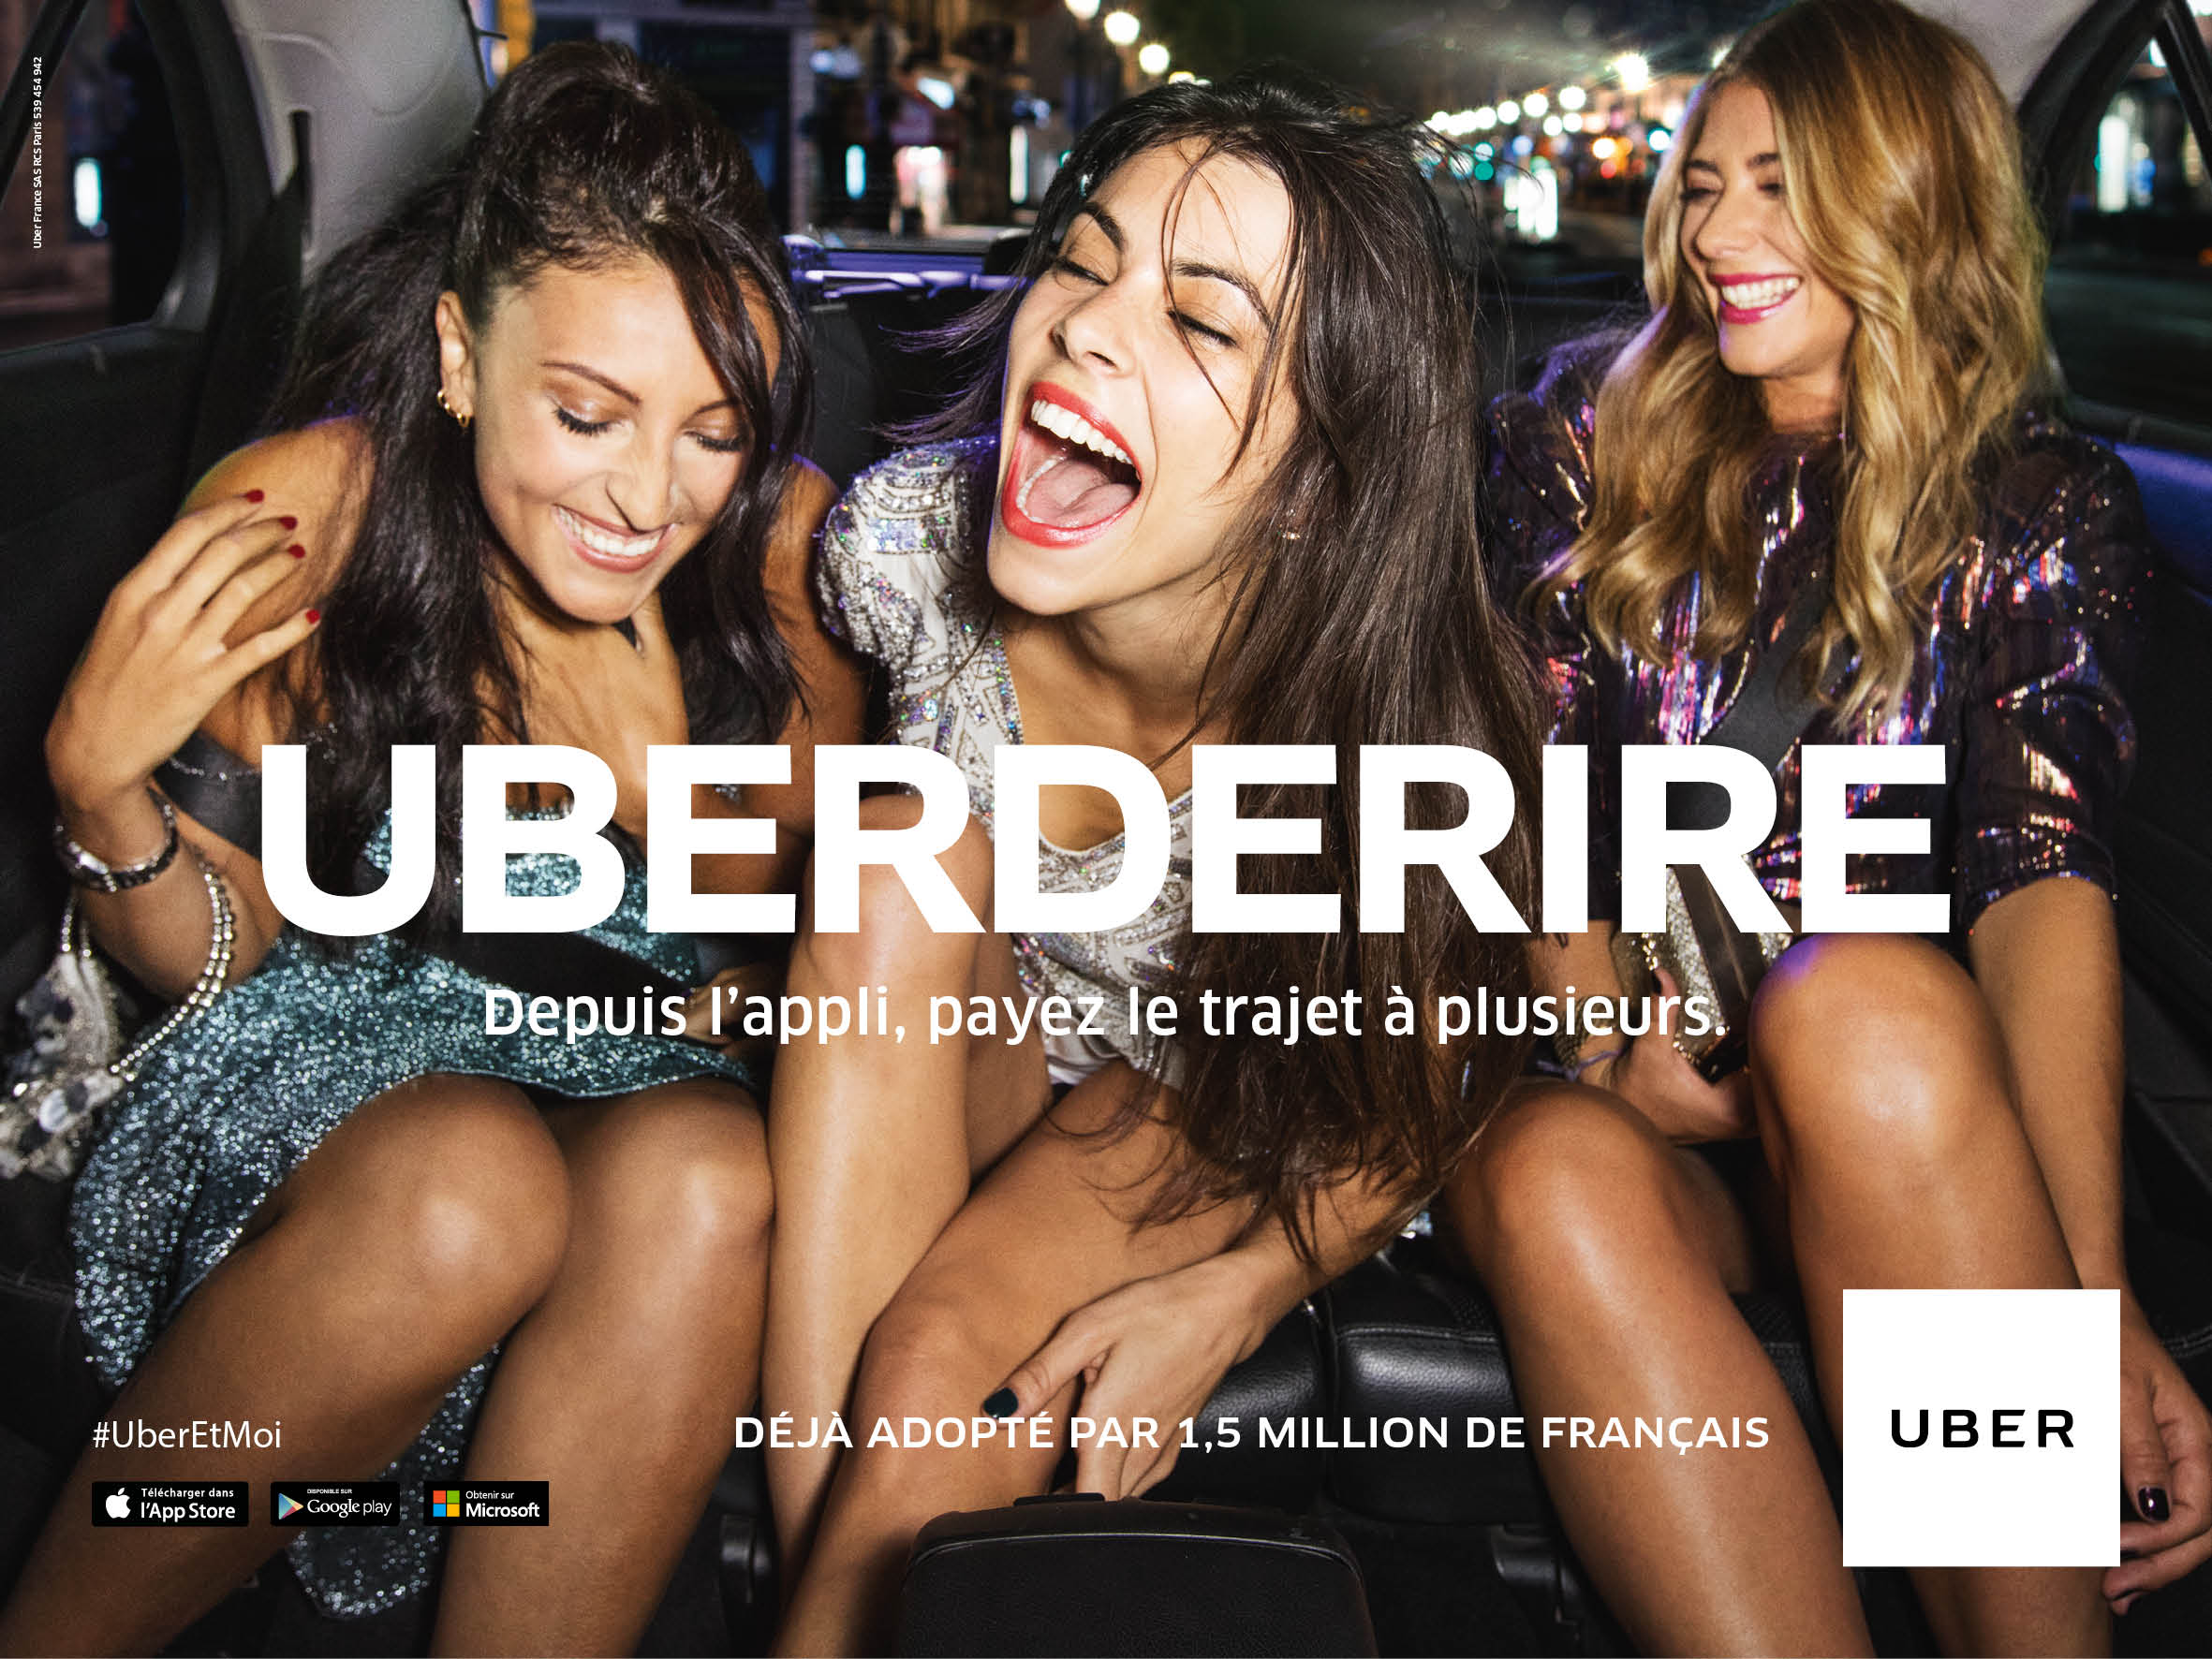 uber-france-publicite-marketing-application-utilisateurs-passagers-mars-2016-agence-marcel-publicis-8